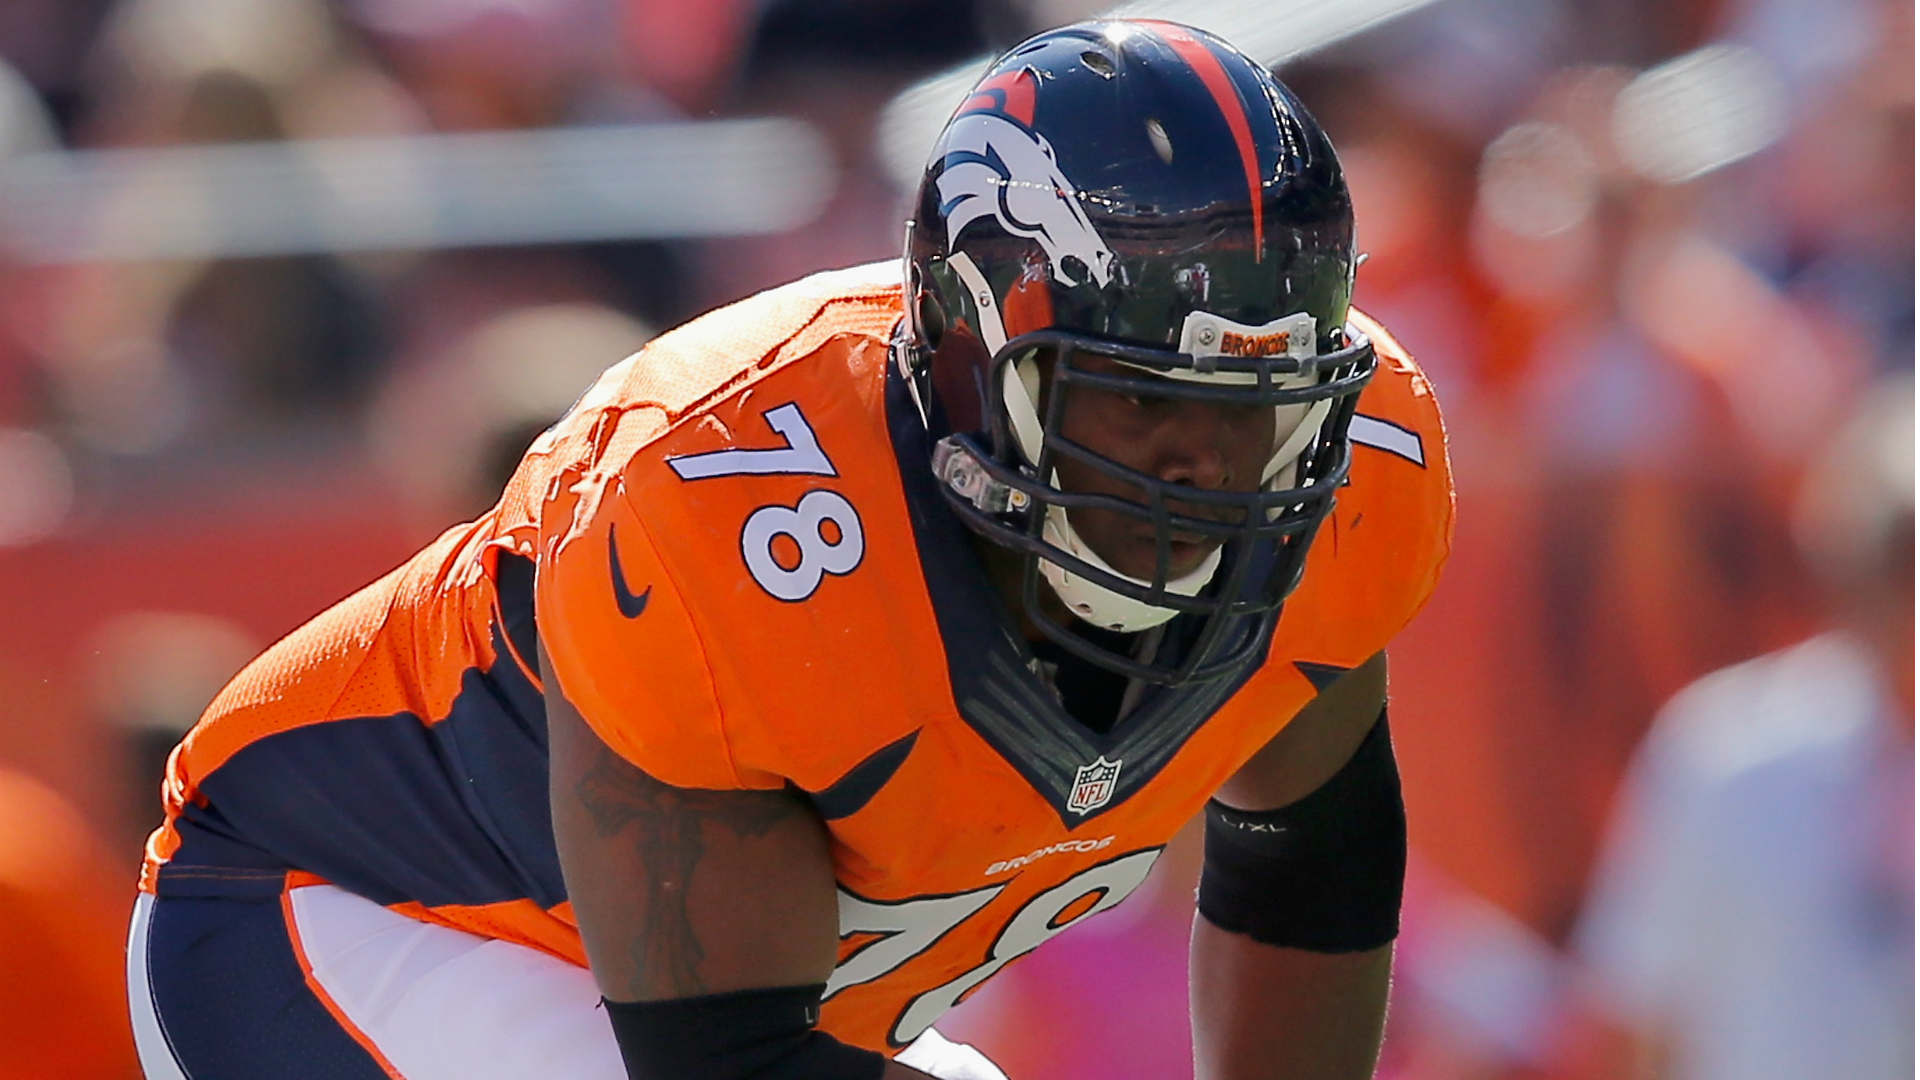 Broncos Pro Bowler Ryan Clady tears ACL, likely out for 2015